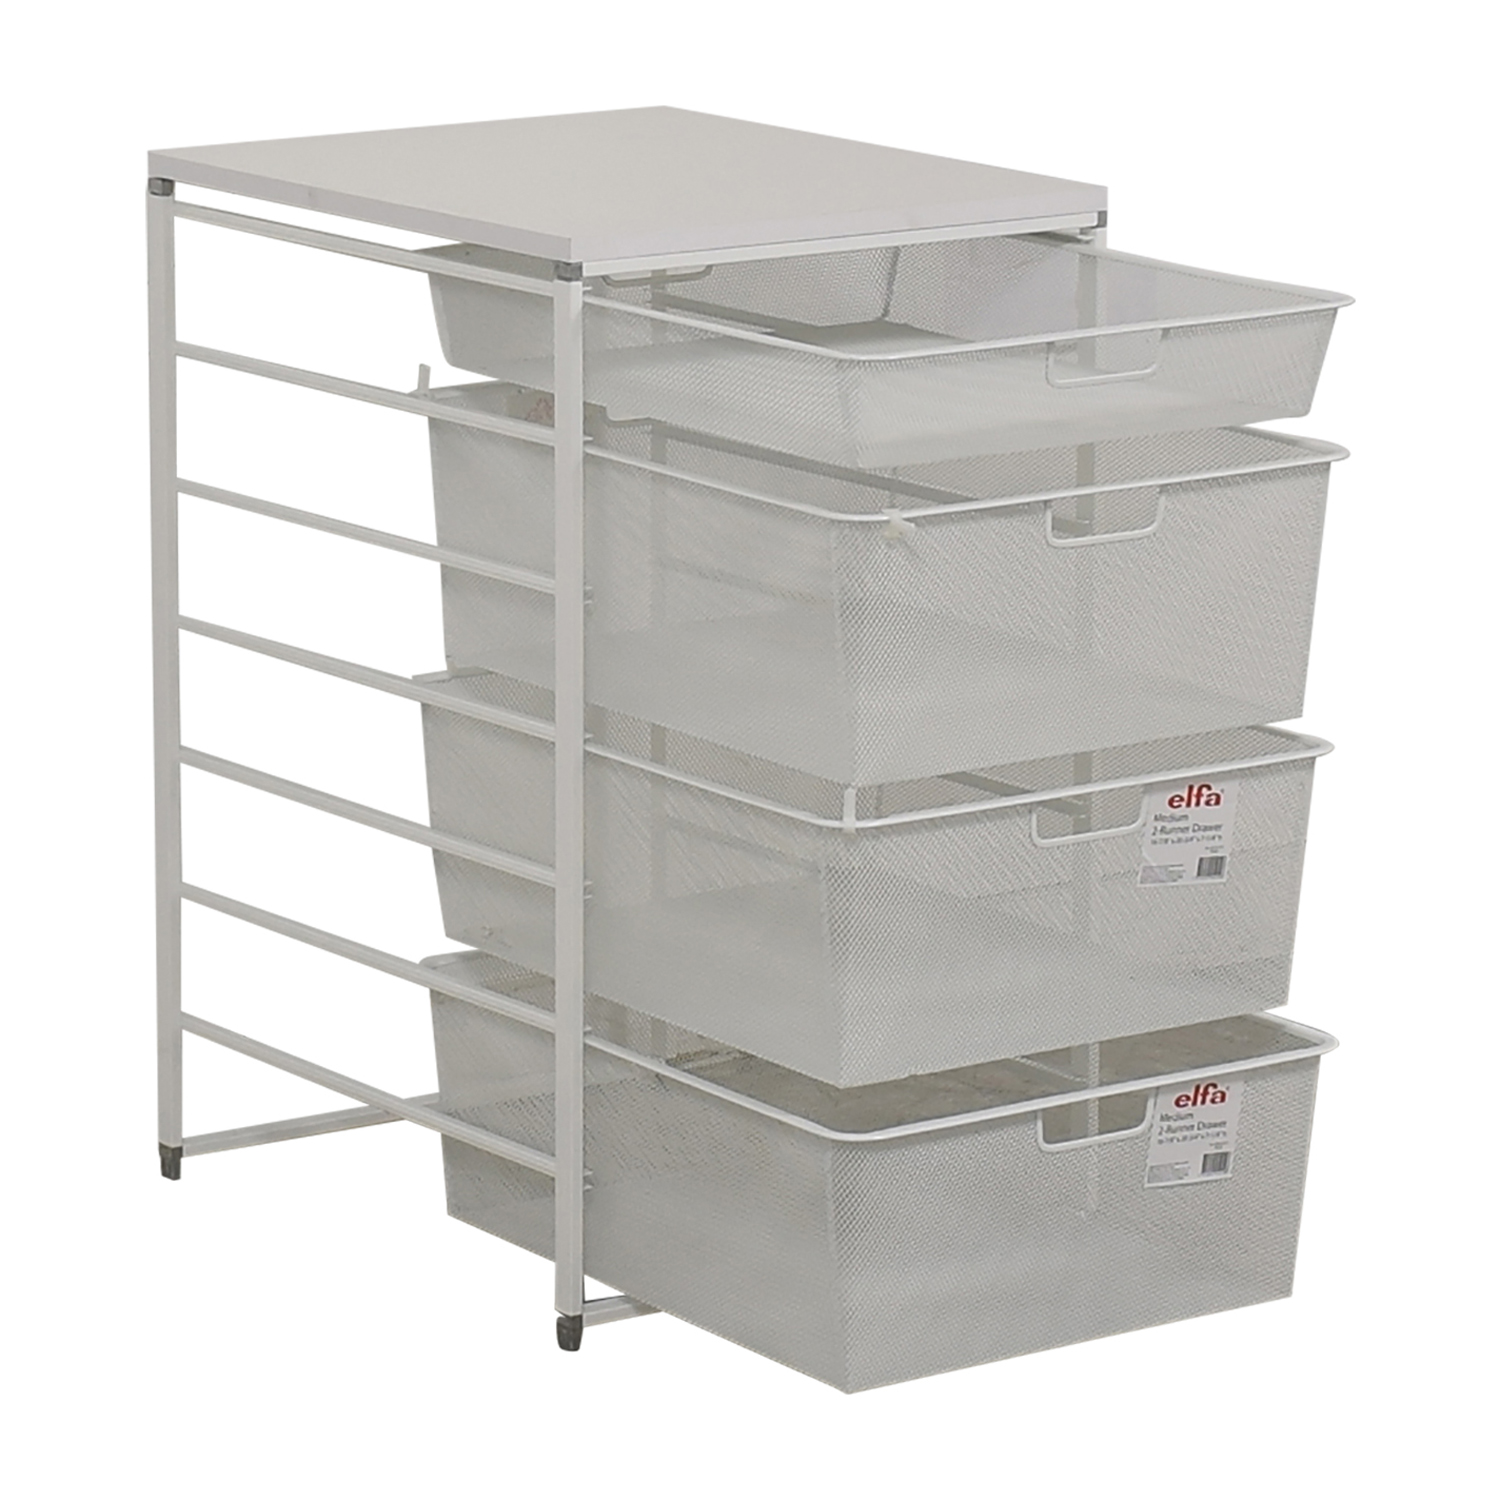 83 Off Elfa Elfa White Mesh Closet Drawers Storage